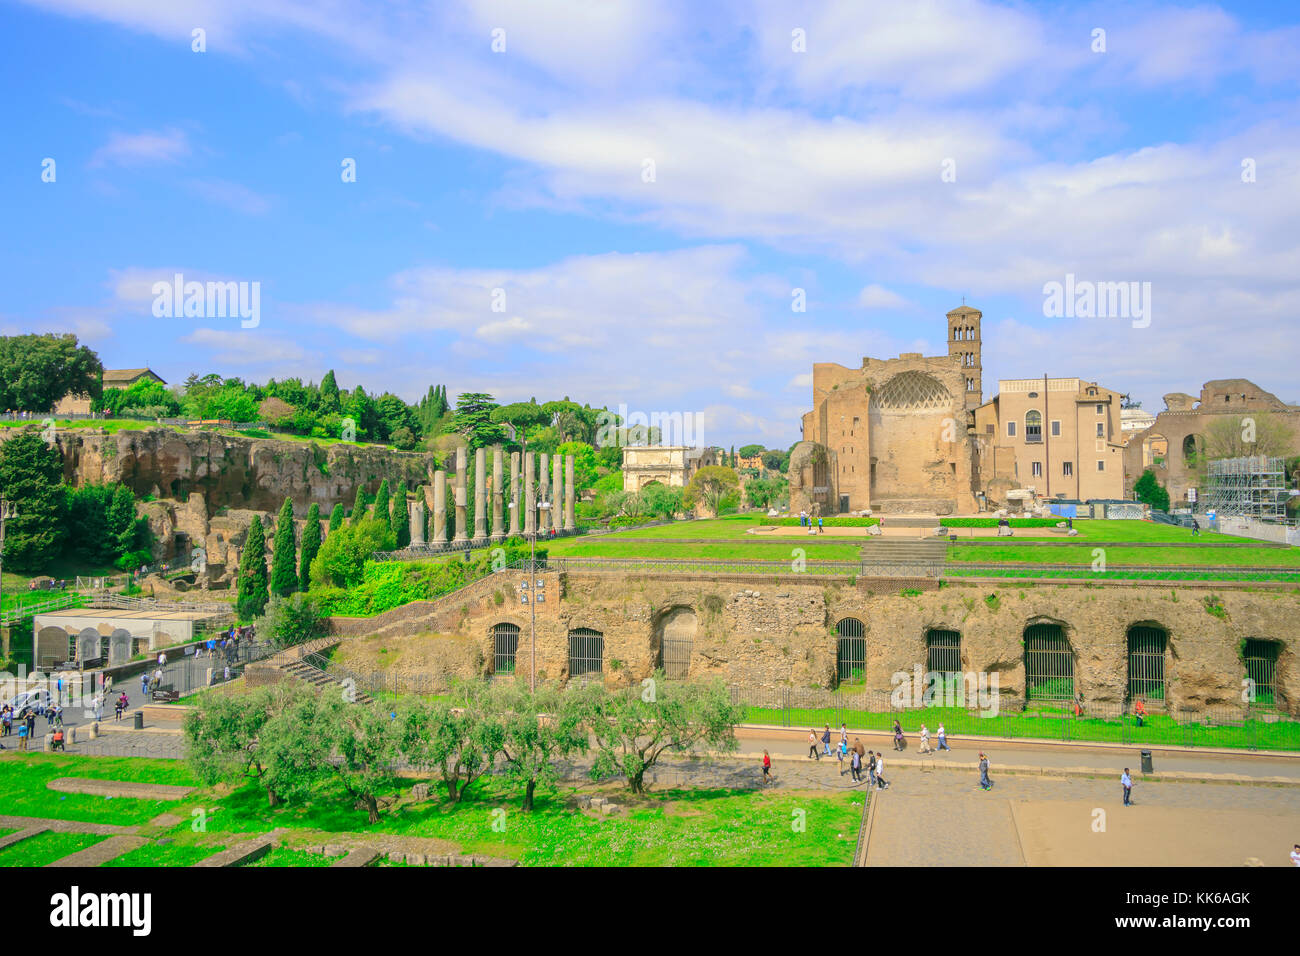 View of Roman ruins, columns and reconstructions of the Old City in Rome with many tourists. - Stock Image